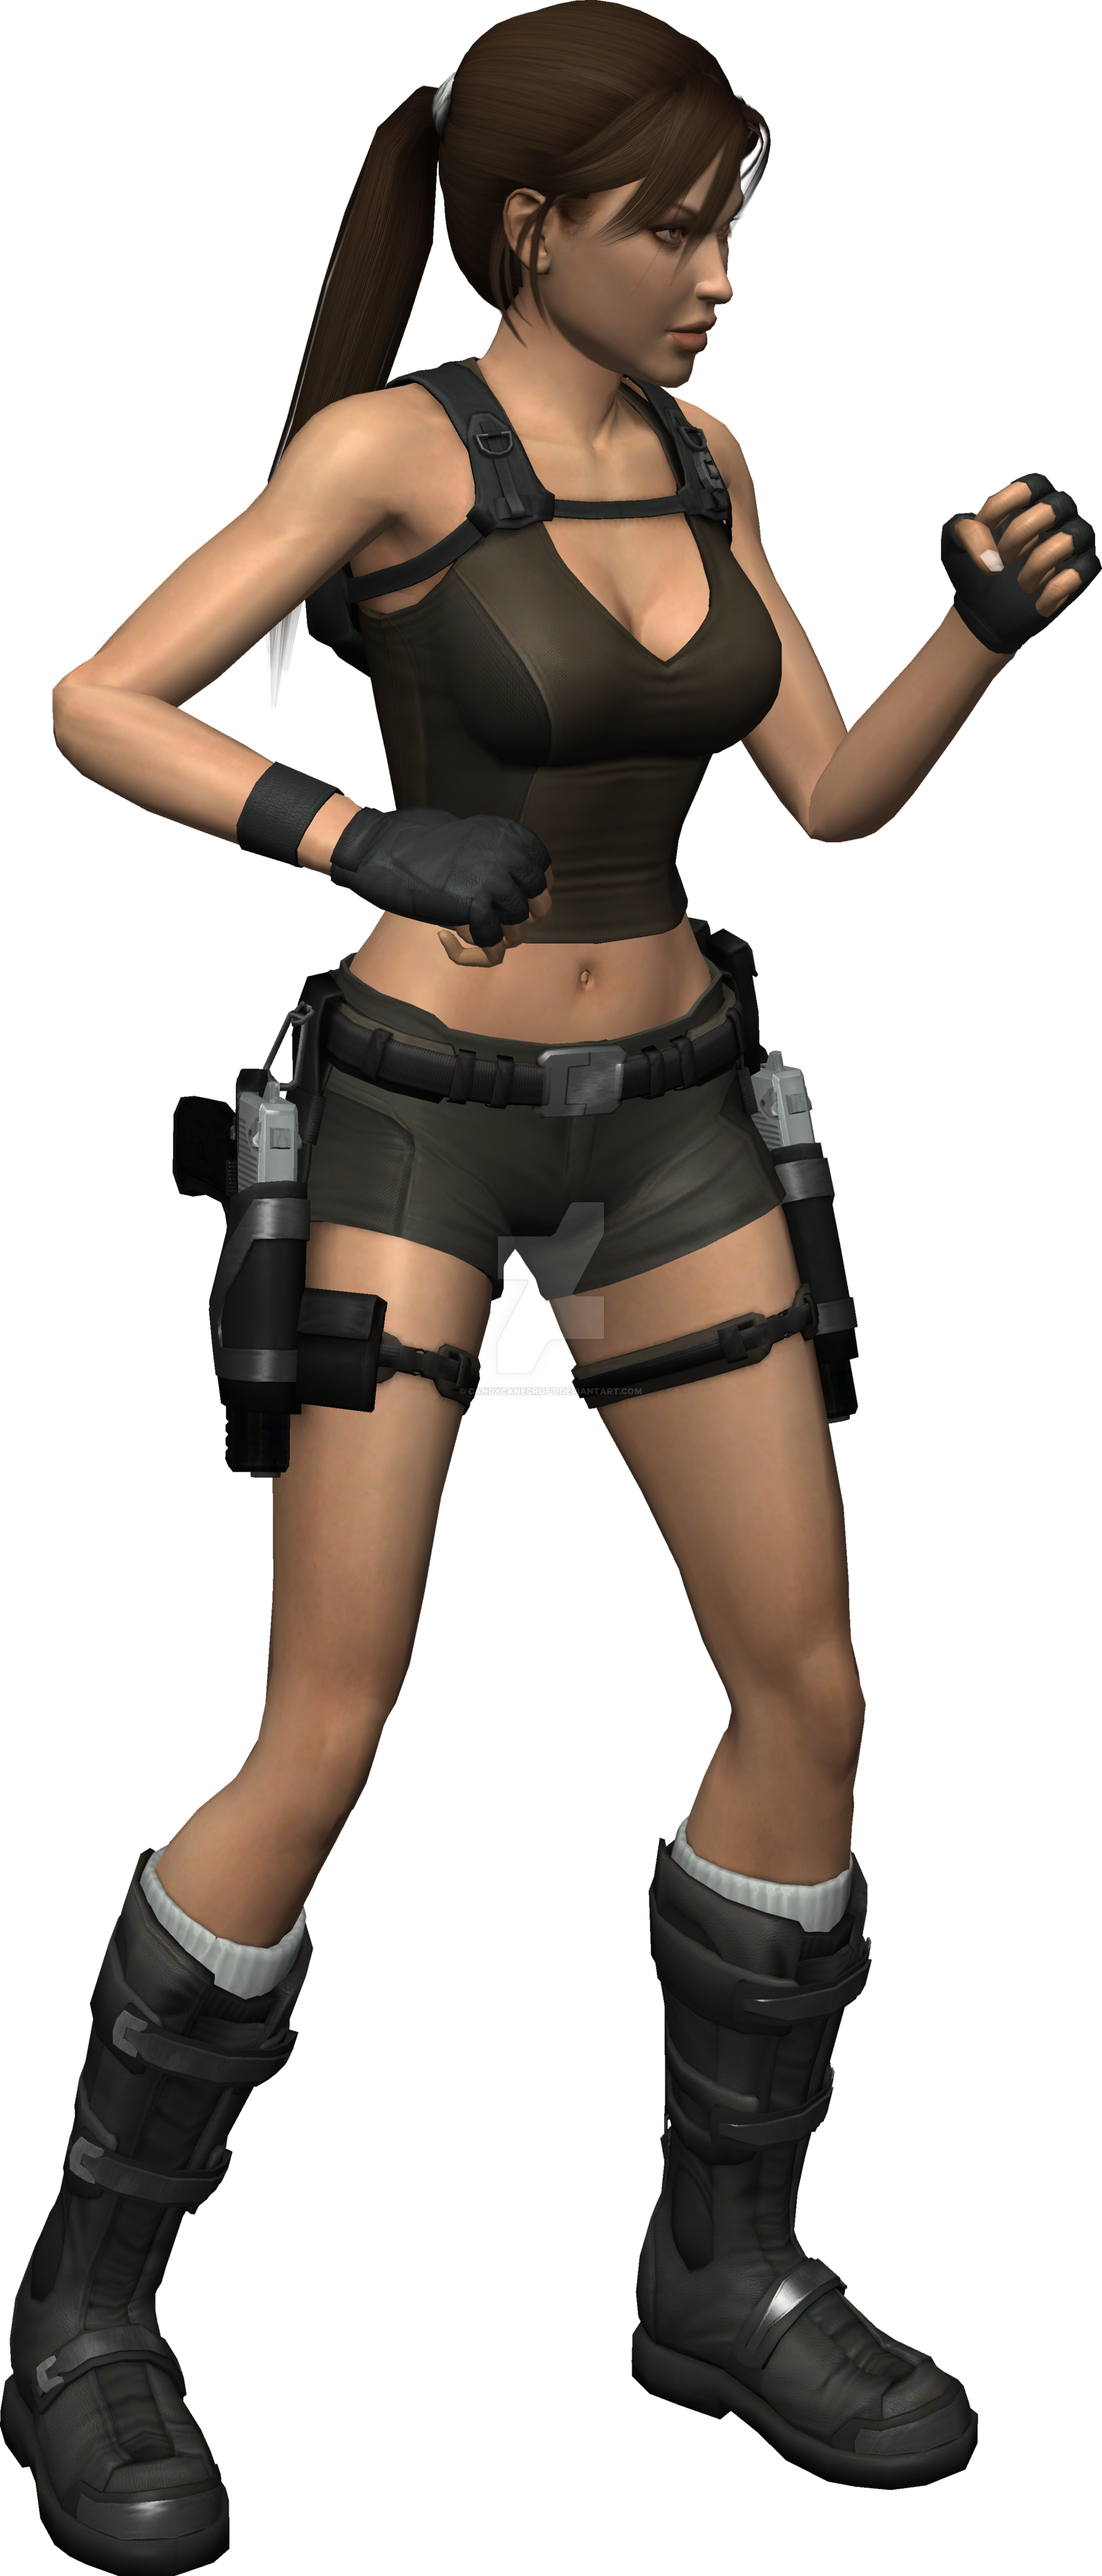 uploads lara croft lara croft PNG57 4